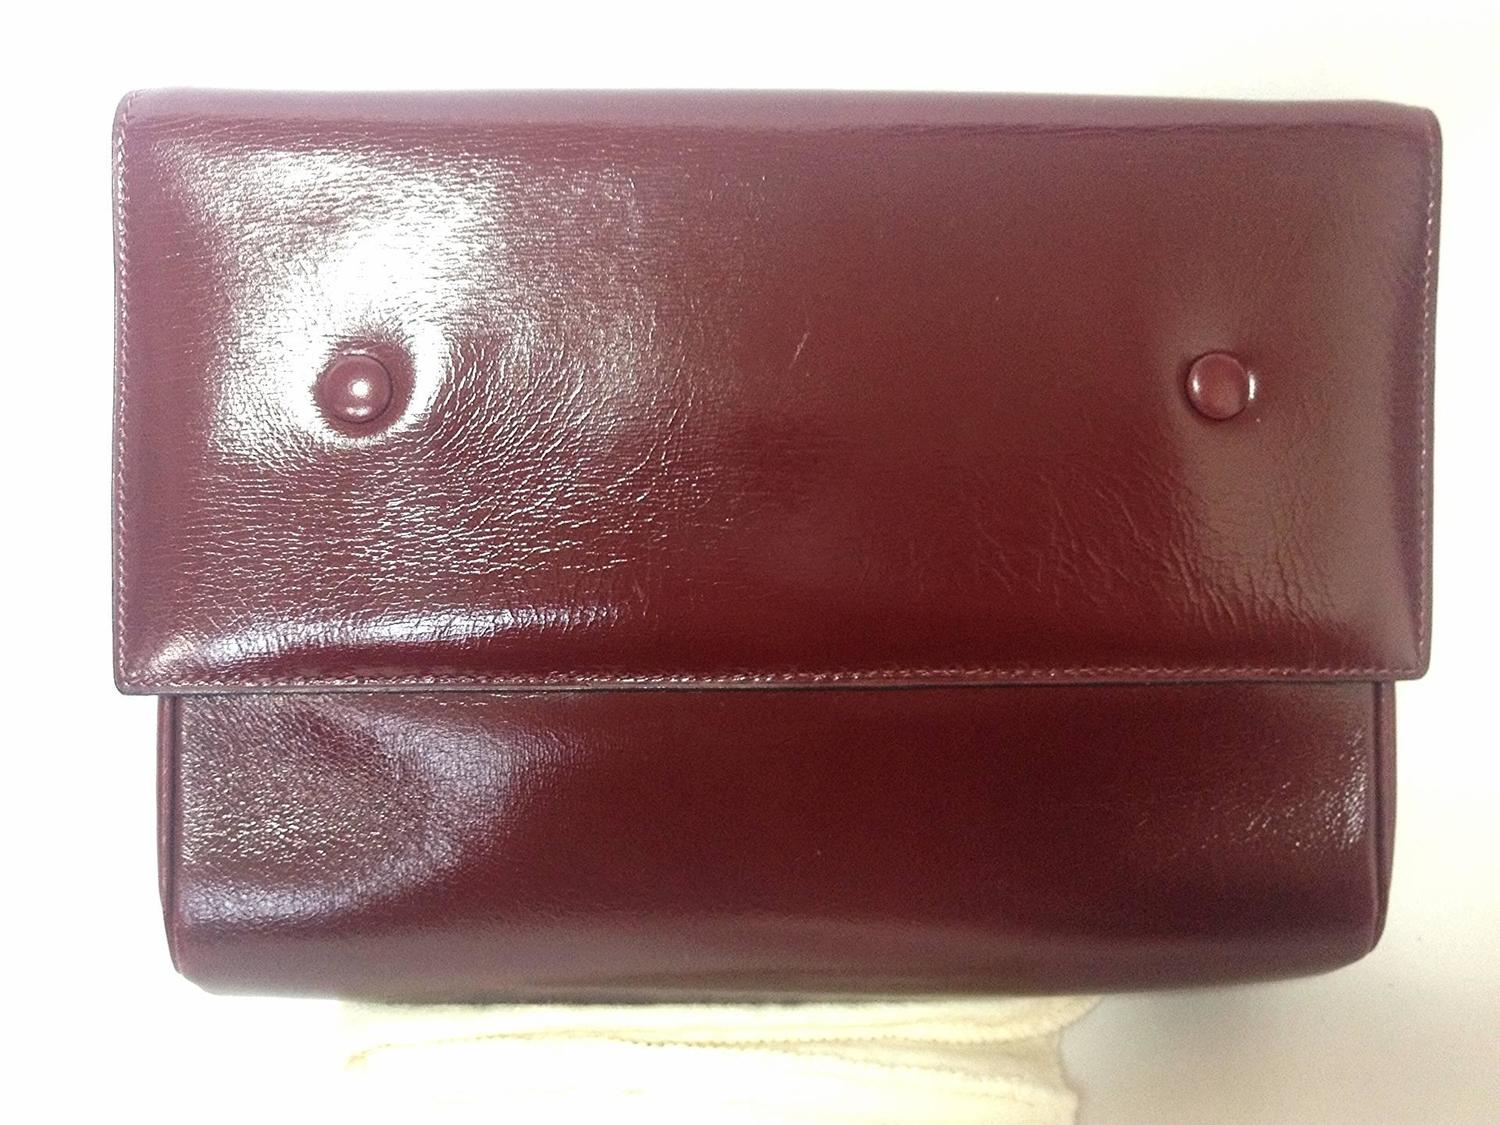 celine wine coloured leather bag